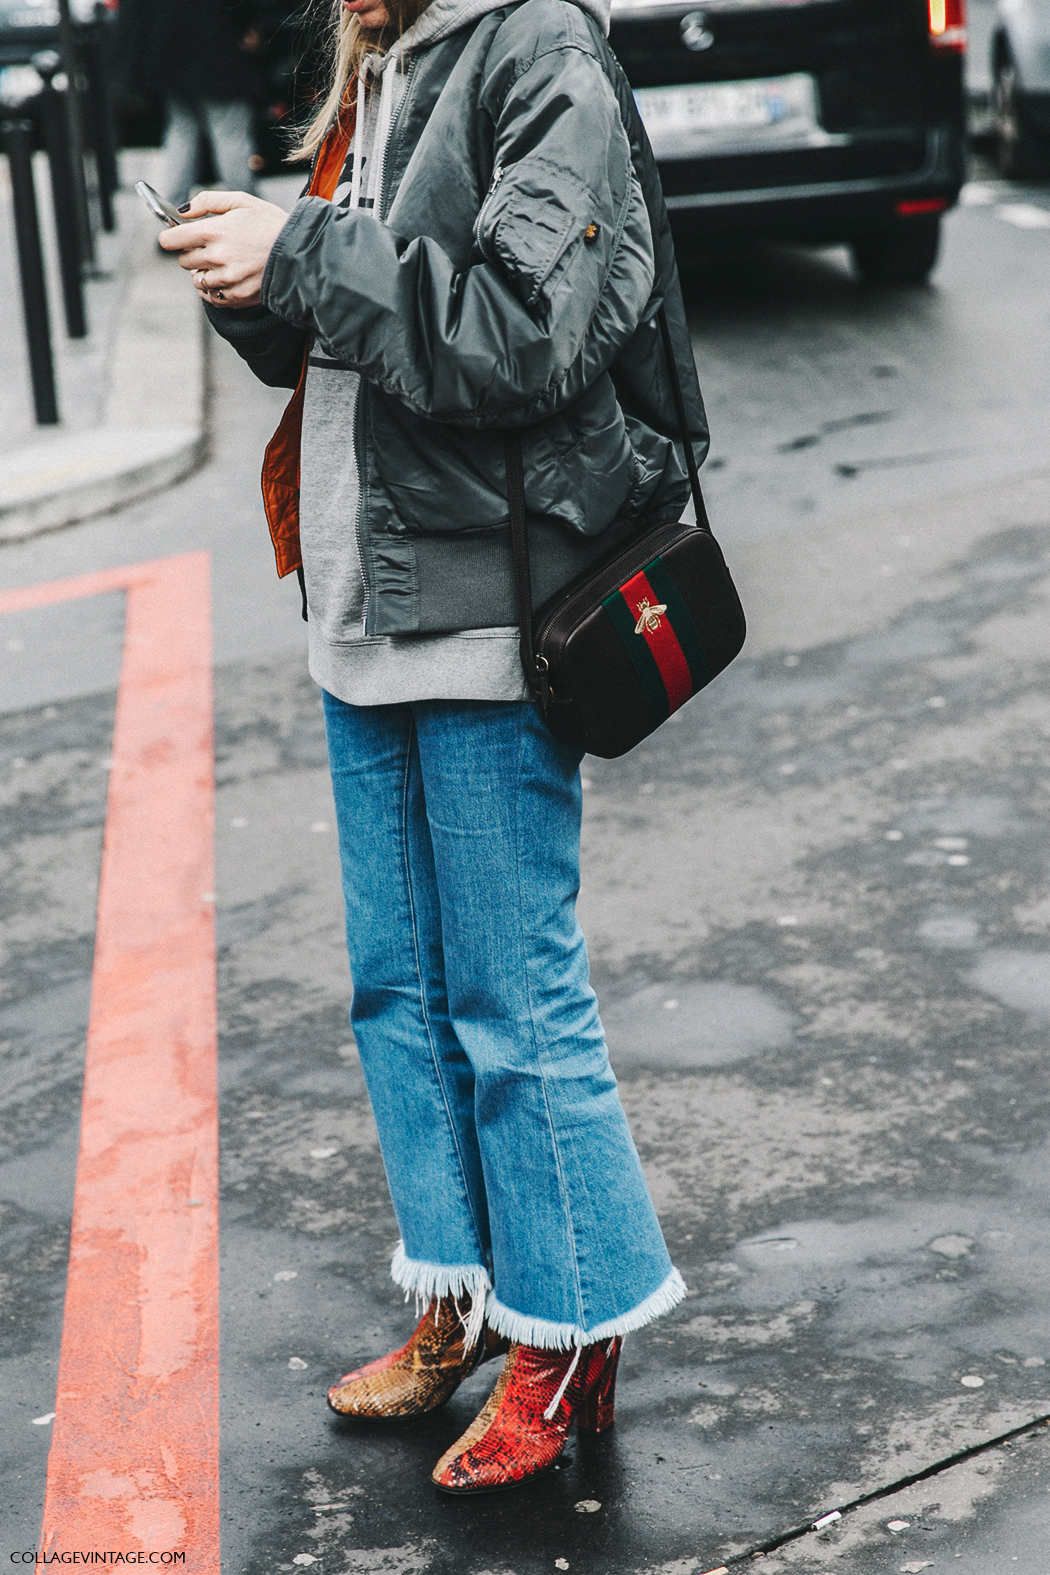 PFW-Paris_Fashion_Week_Fall_2016-Street_Style-Collage_Vintage-Miu_Miu-Bomber-Sweatshirt-Snake_Boots-Gucci-